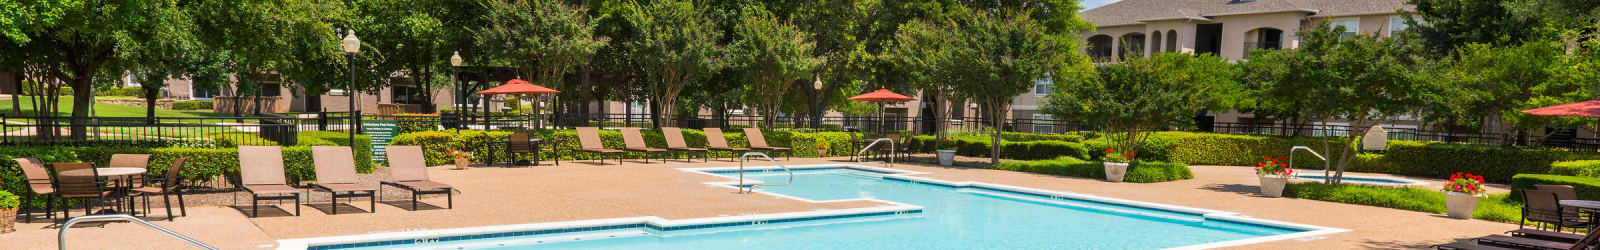 Apply at Ballantyne Apartments in Lewisville, Texas